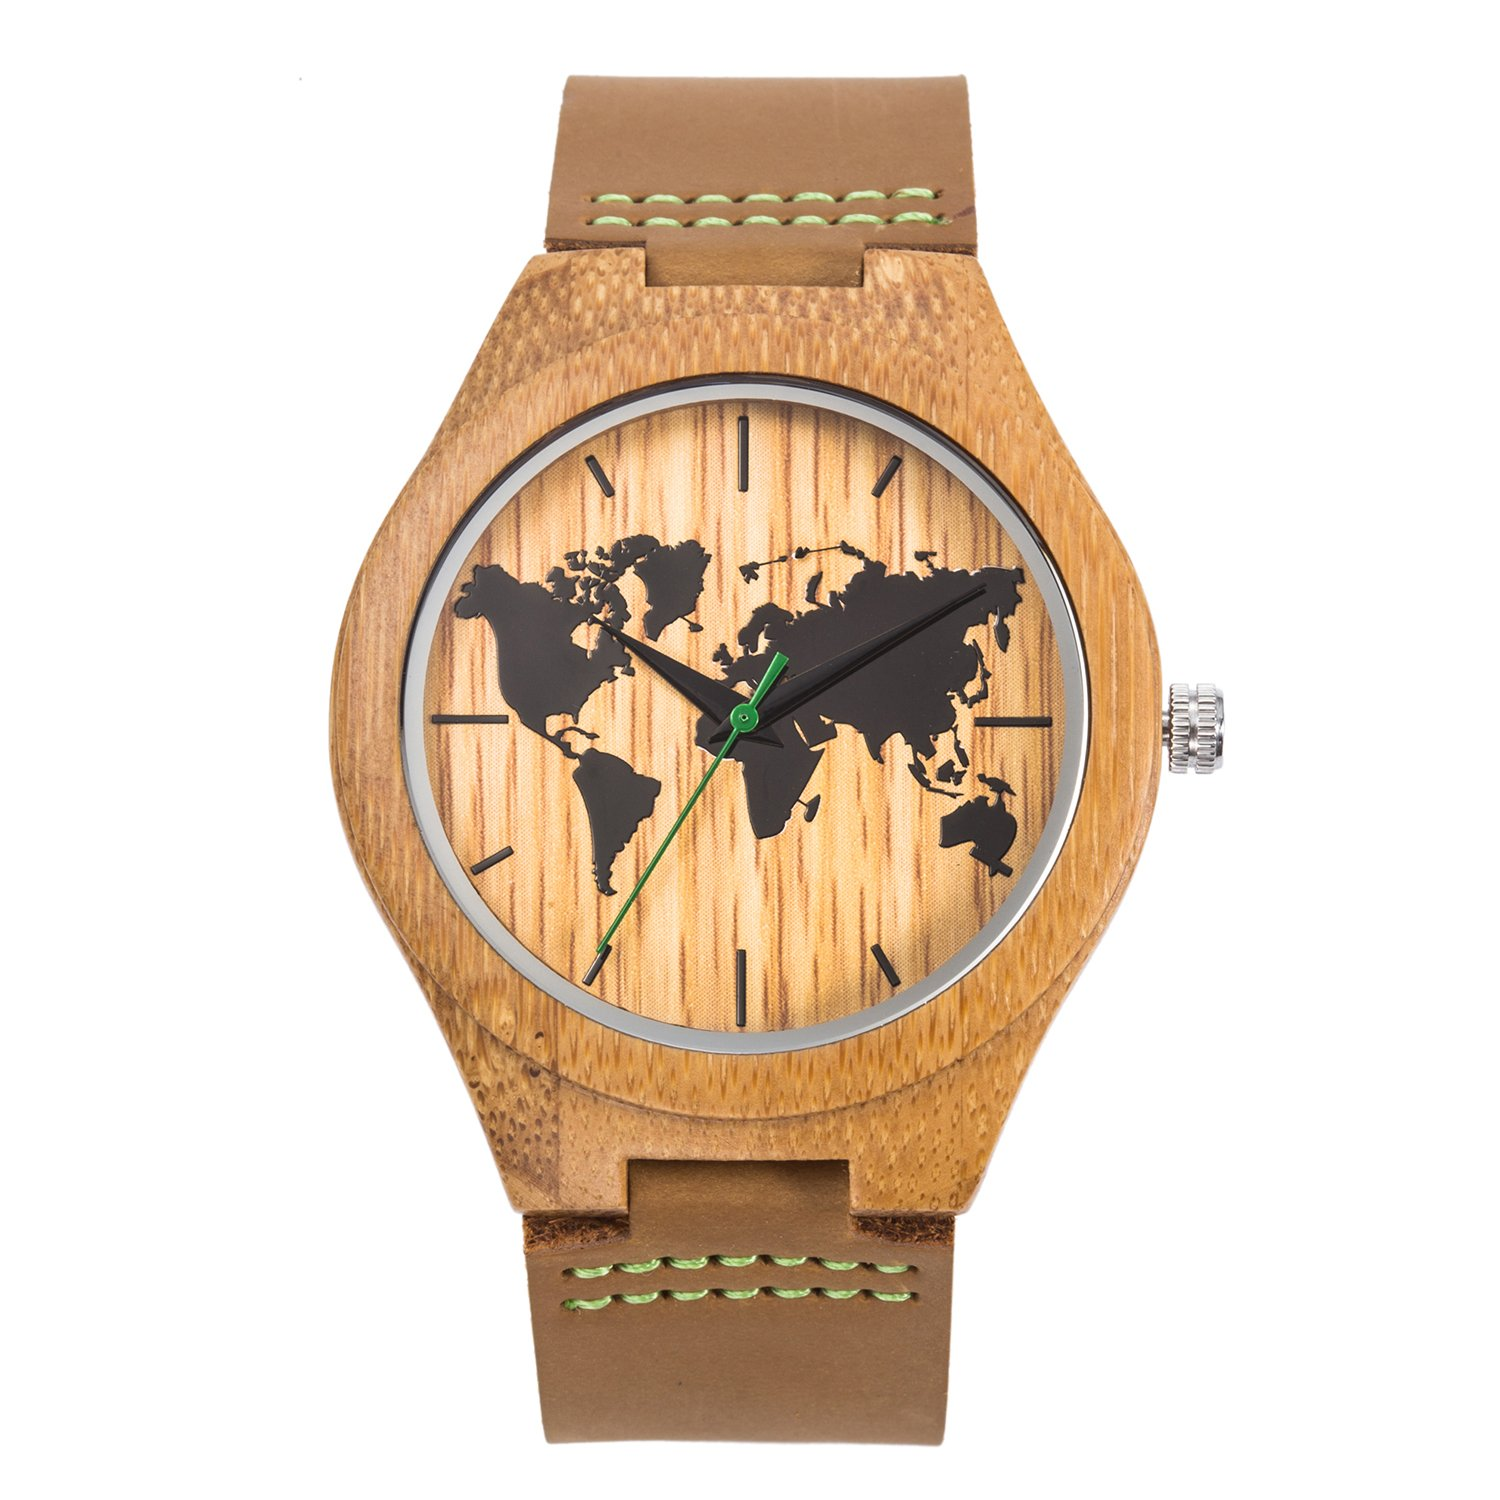 Sentai Men's World Map Wooden Watch, Handmade Natural Bamboo Wood, Genuine Leather Strap (Brown)